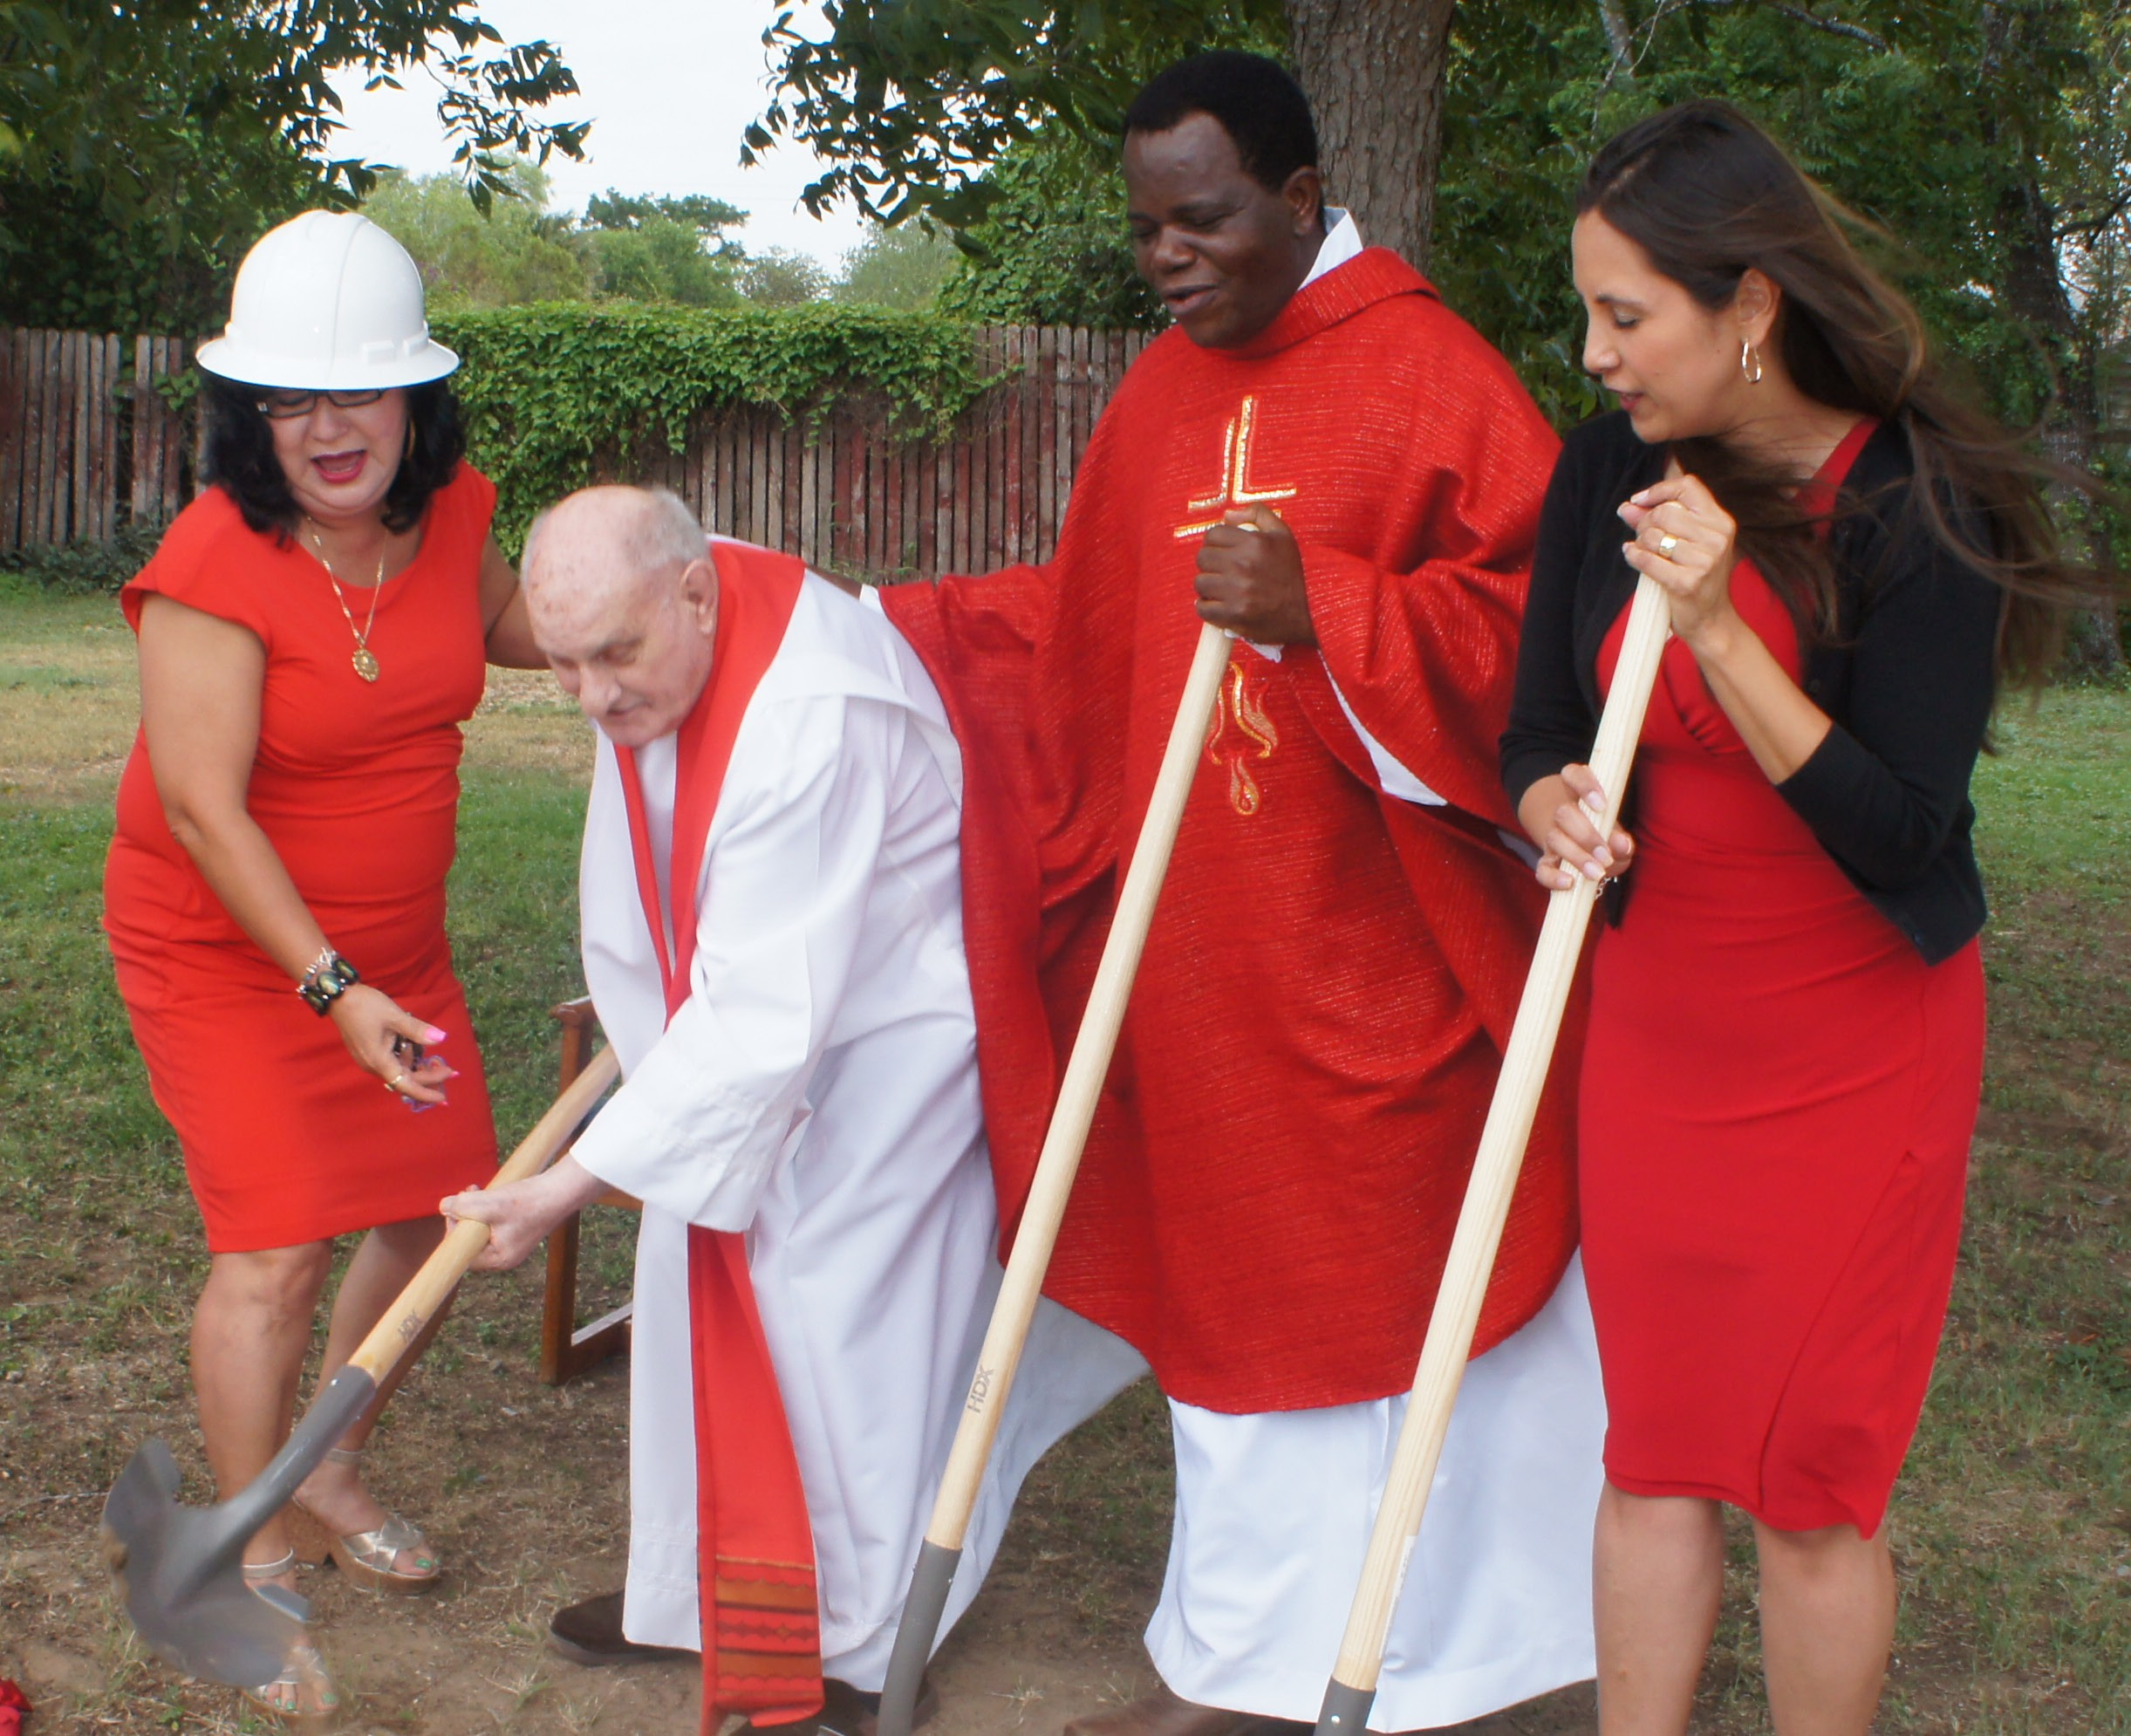 The parish at St. Philip Benizi Catholic Church in Poteet celebrated the ground-breaking of a new parish hall. Among those taking part in the occasion are, left to right: Virginia Estrada, Father Felix Avau (retired priest), Father Albert Lelo (current priest) and Anna Ybarra.